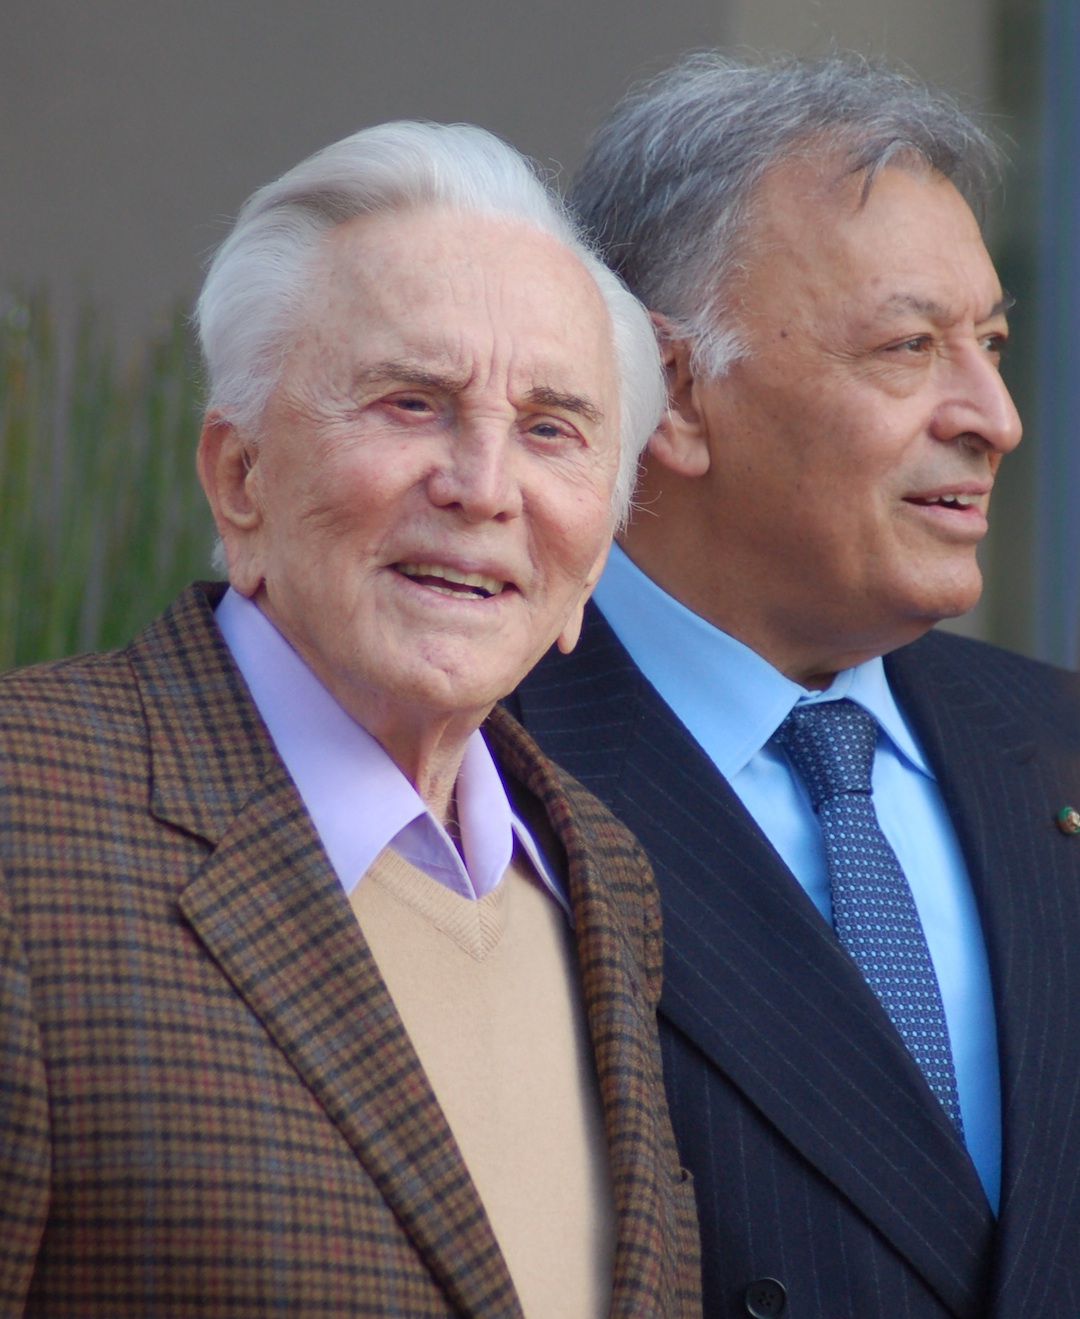 Kirk Douglas with Zubin Mehta, director of the Israel Philharmonic Orchestra, in March 2011. Credit: Angela George.